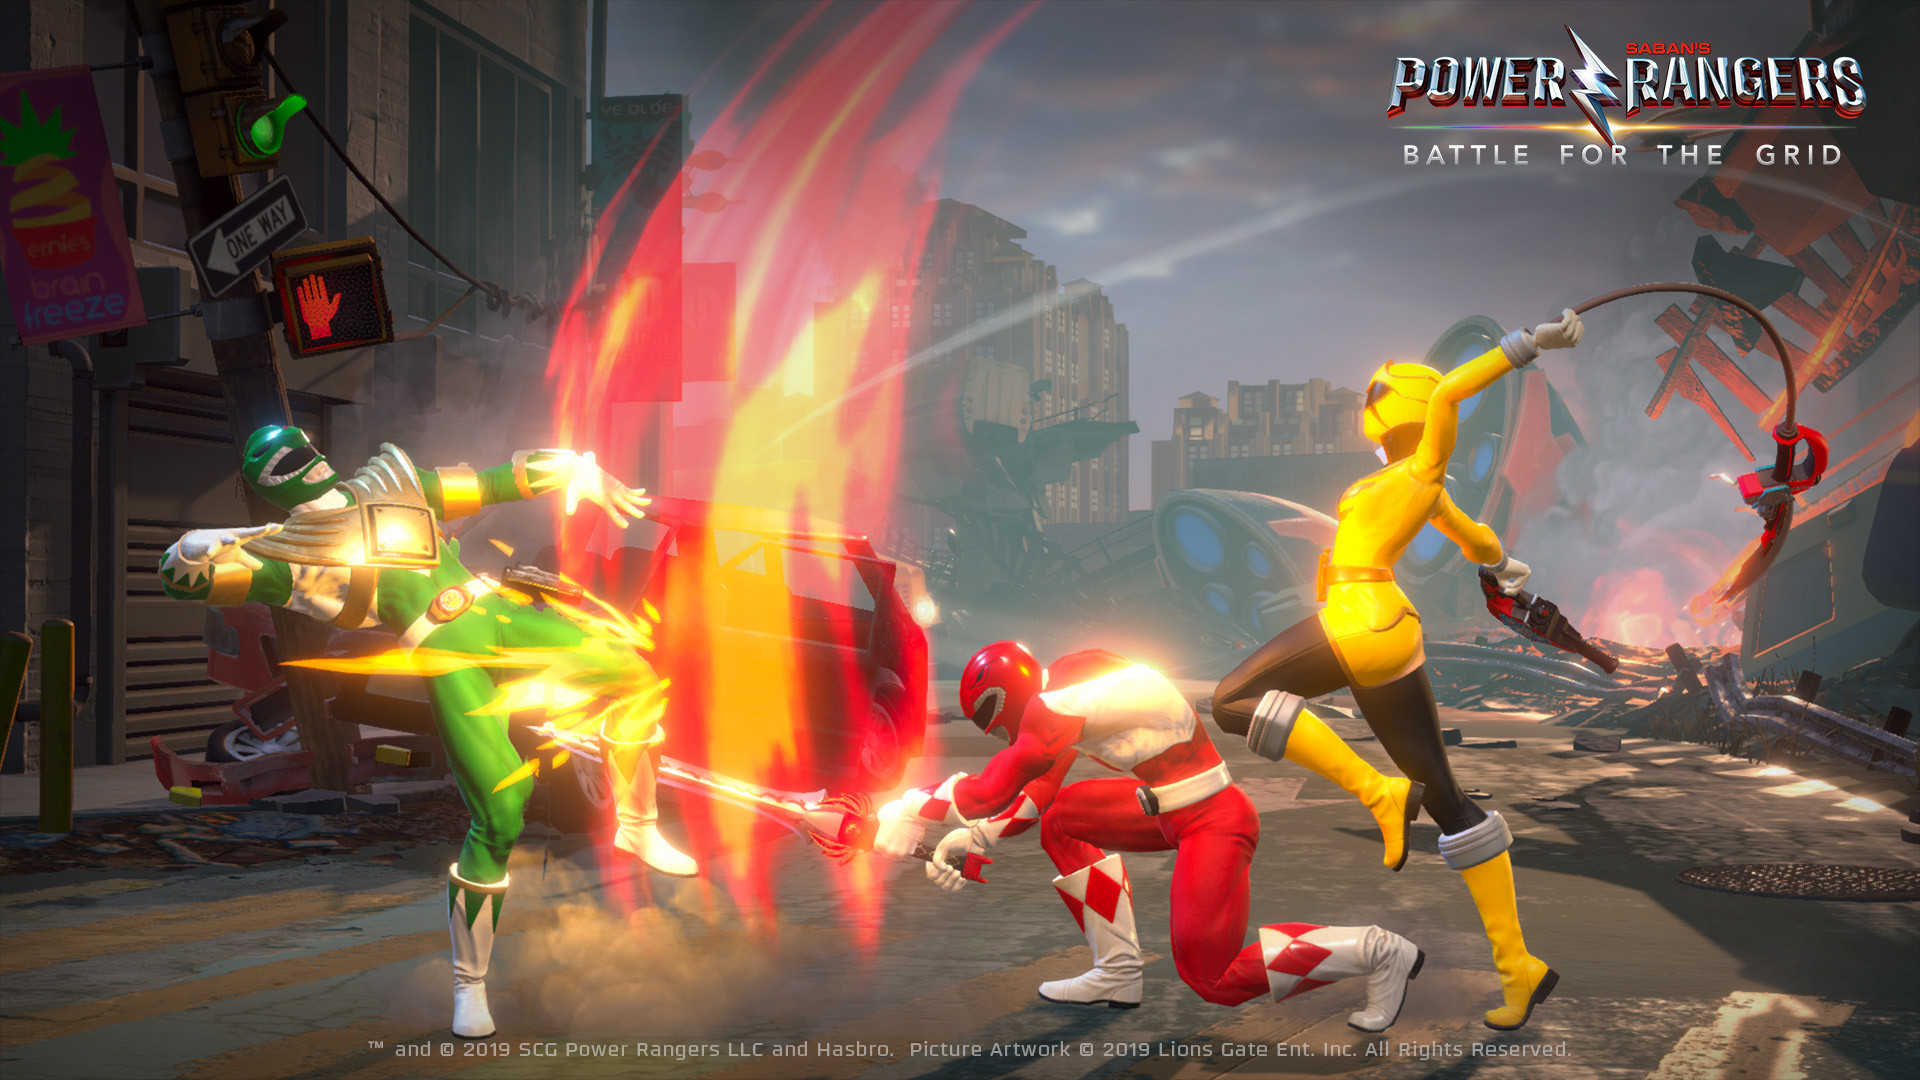 Click image for larger version  Name:	Power Rangers Battle for the Grid Promo Screen 3.jpg Views:	1 Size:	495.2 KB ID:	3492570